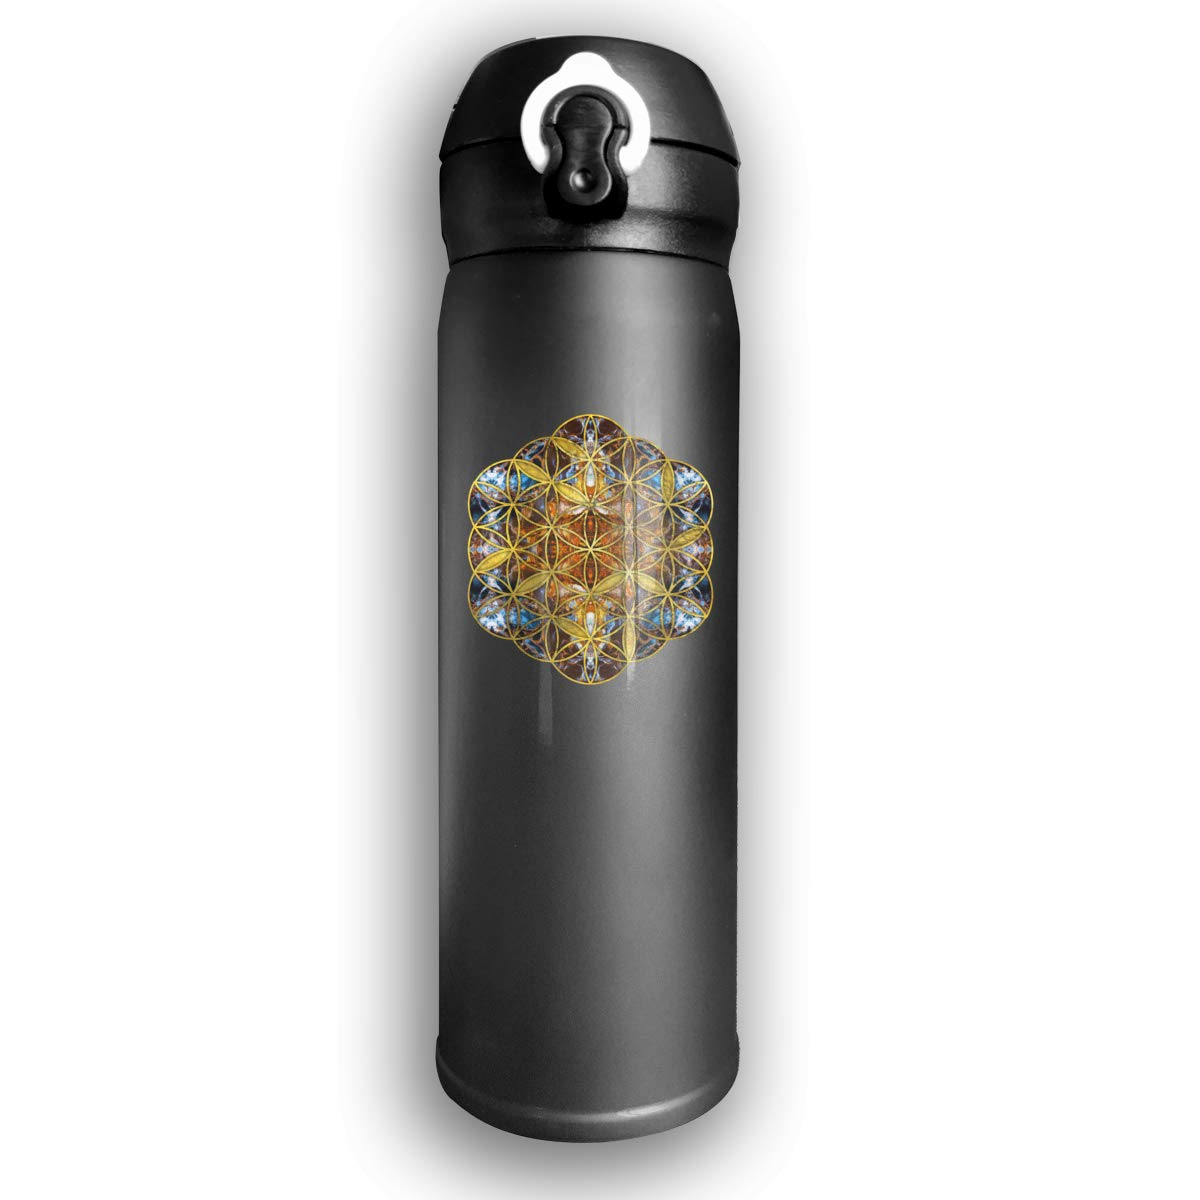 Black Leak-proof Camping /& All Sports Bevanda 25oz Water Bottle Vacuum Insulated Double Wall Shatterproof Stainless Steel Travel Thermos Mug With Narrow Mouth Design  Great For Coffee